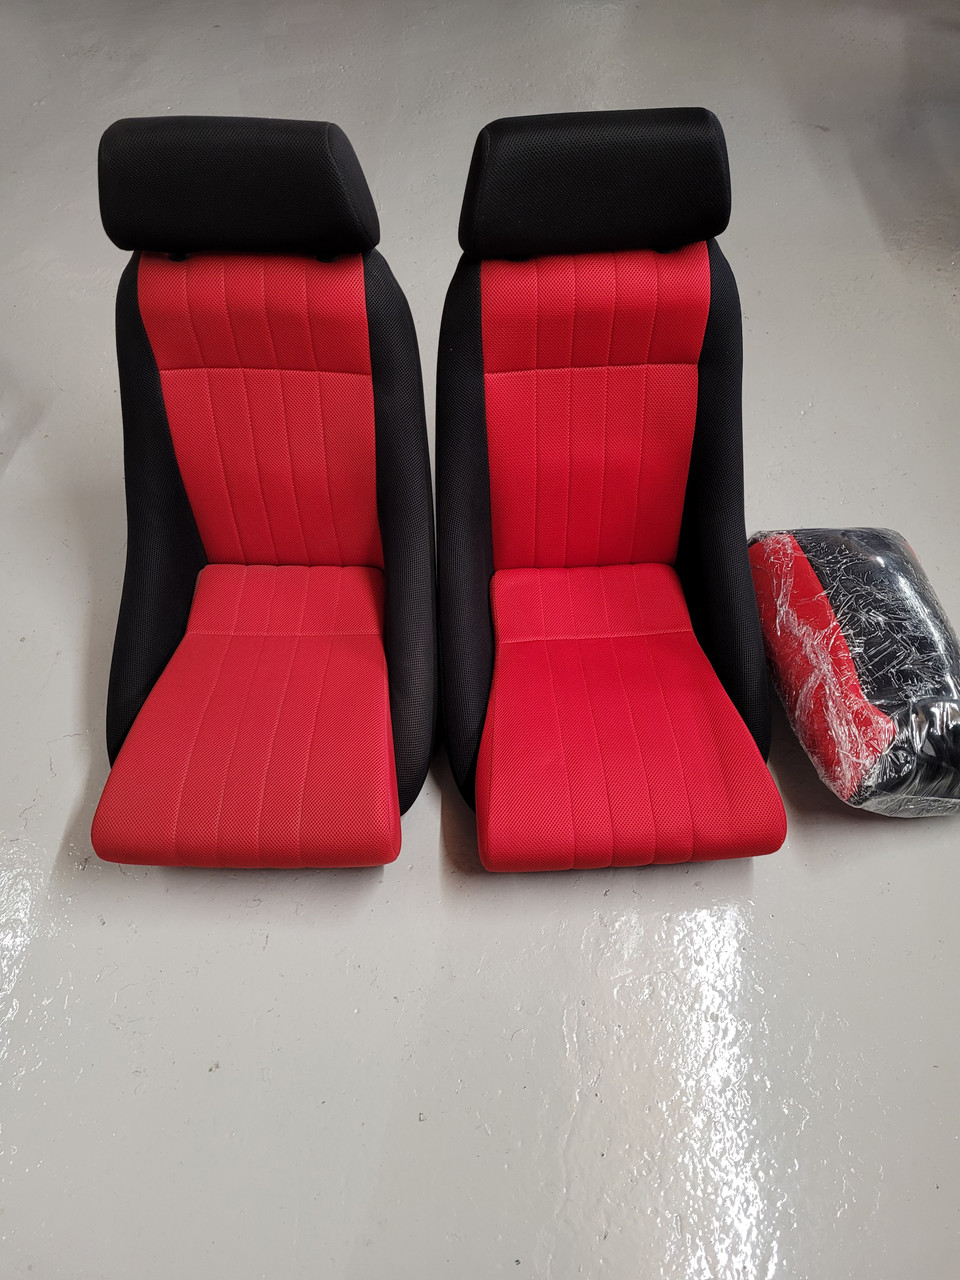 Cobra Classic Black & Red Perforated Fabric Seats including Rear Seat Cover T13